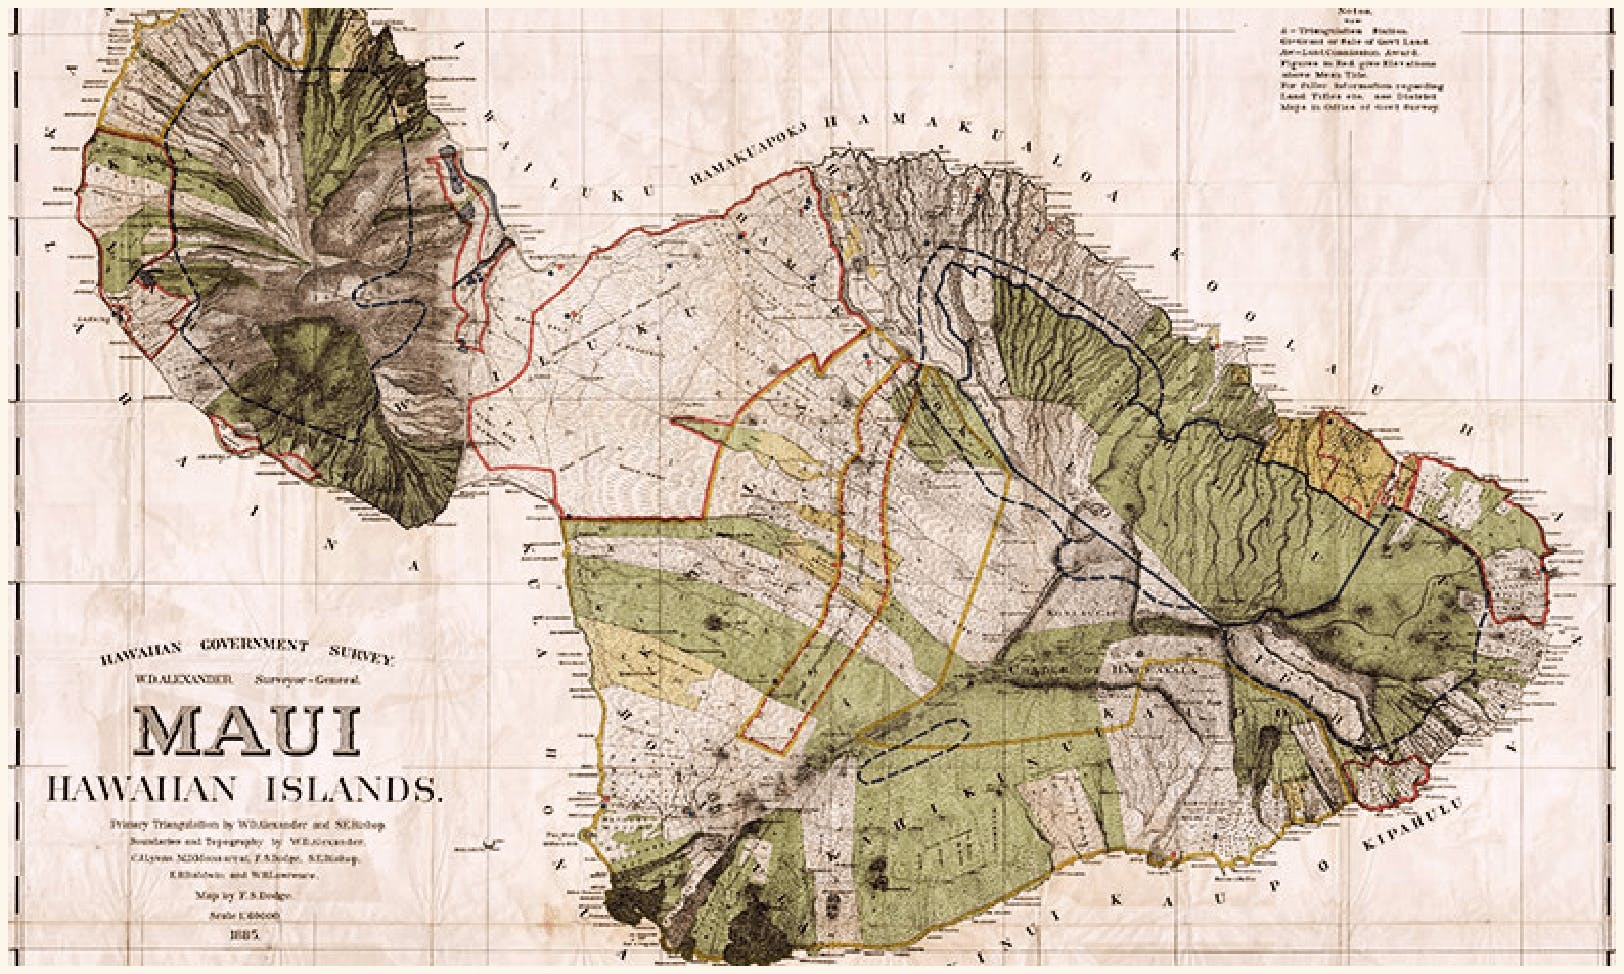 vintage map of the island of Maui